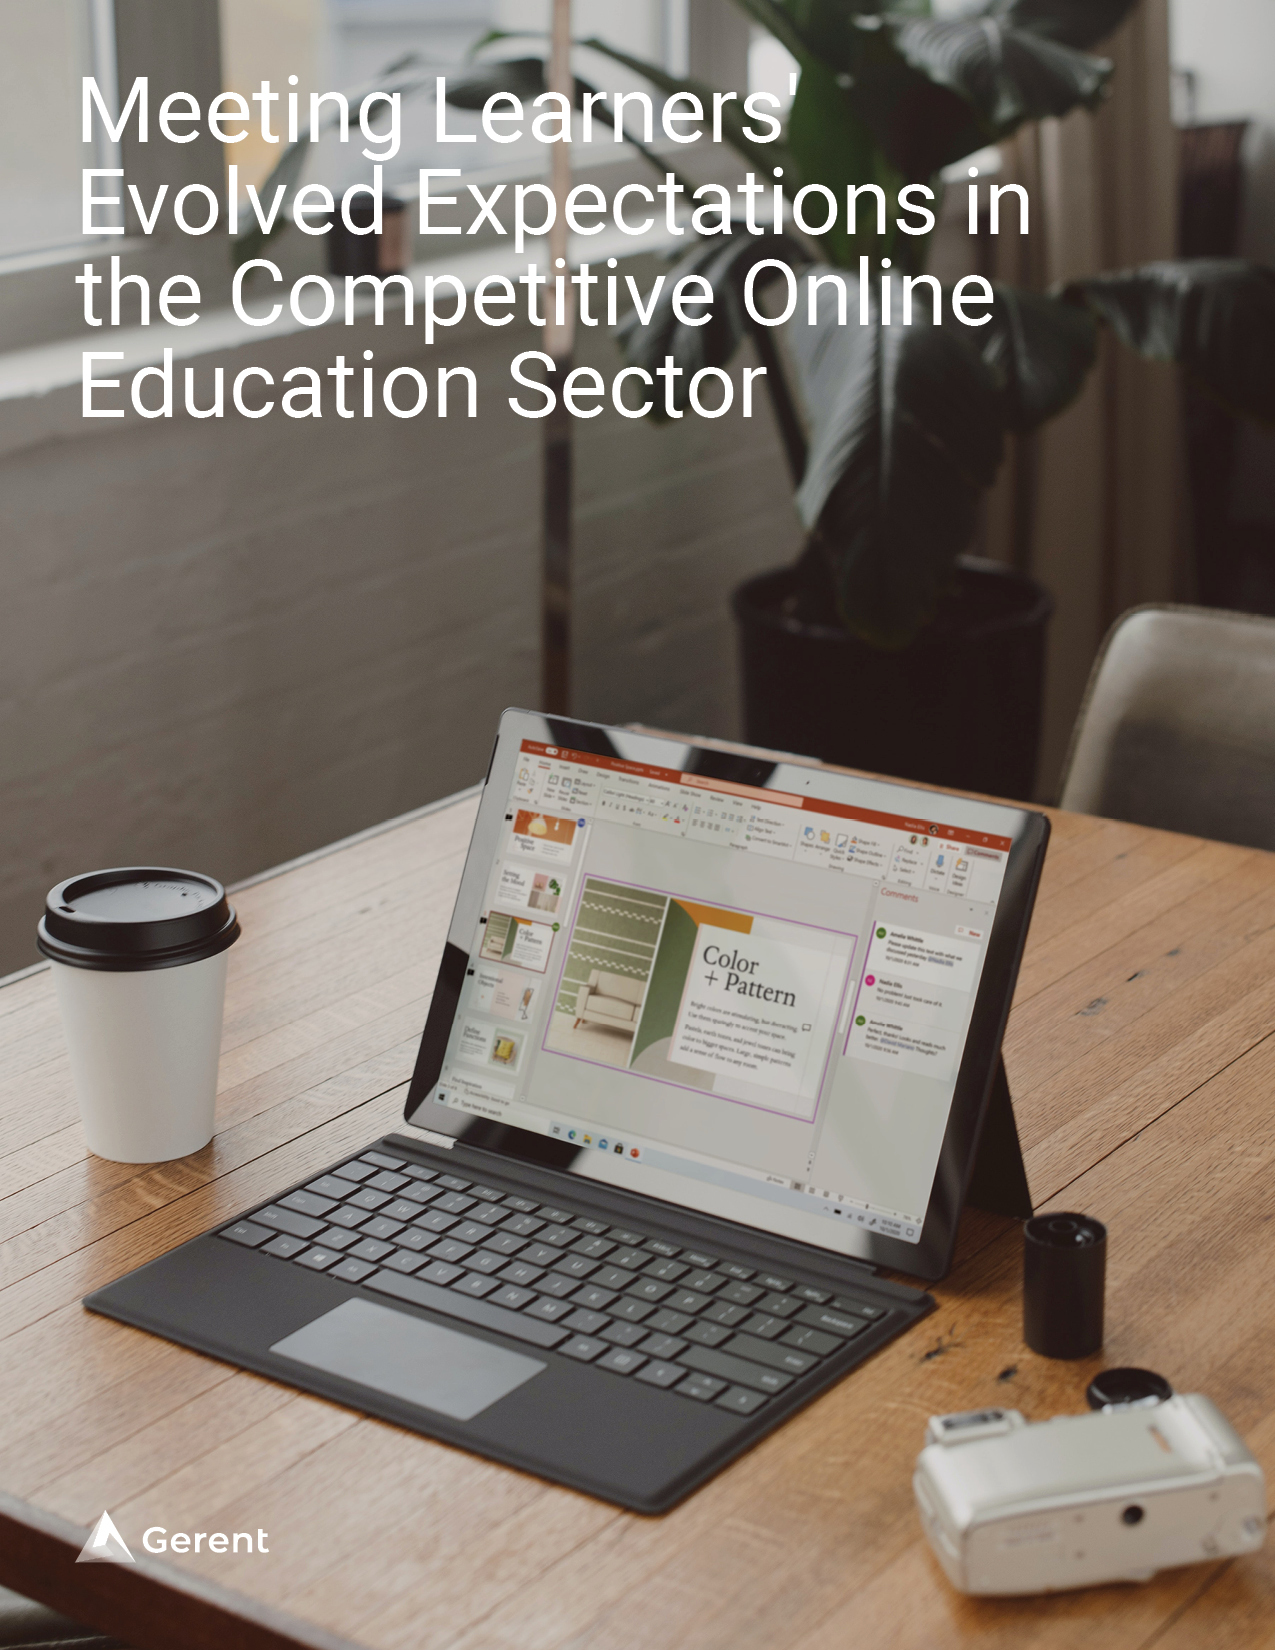 Meeting Learners' Evolved Expectations in the Competitive Online Education Sector